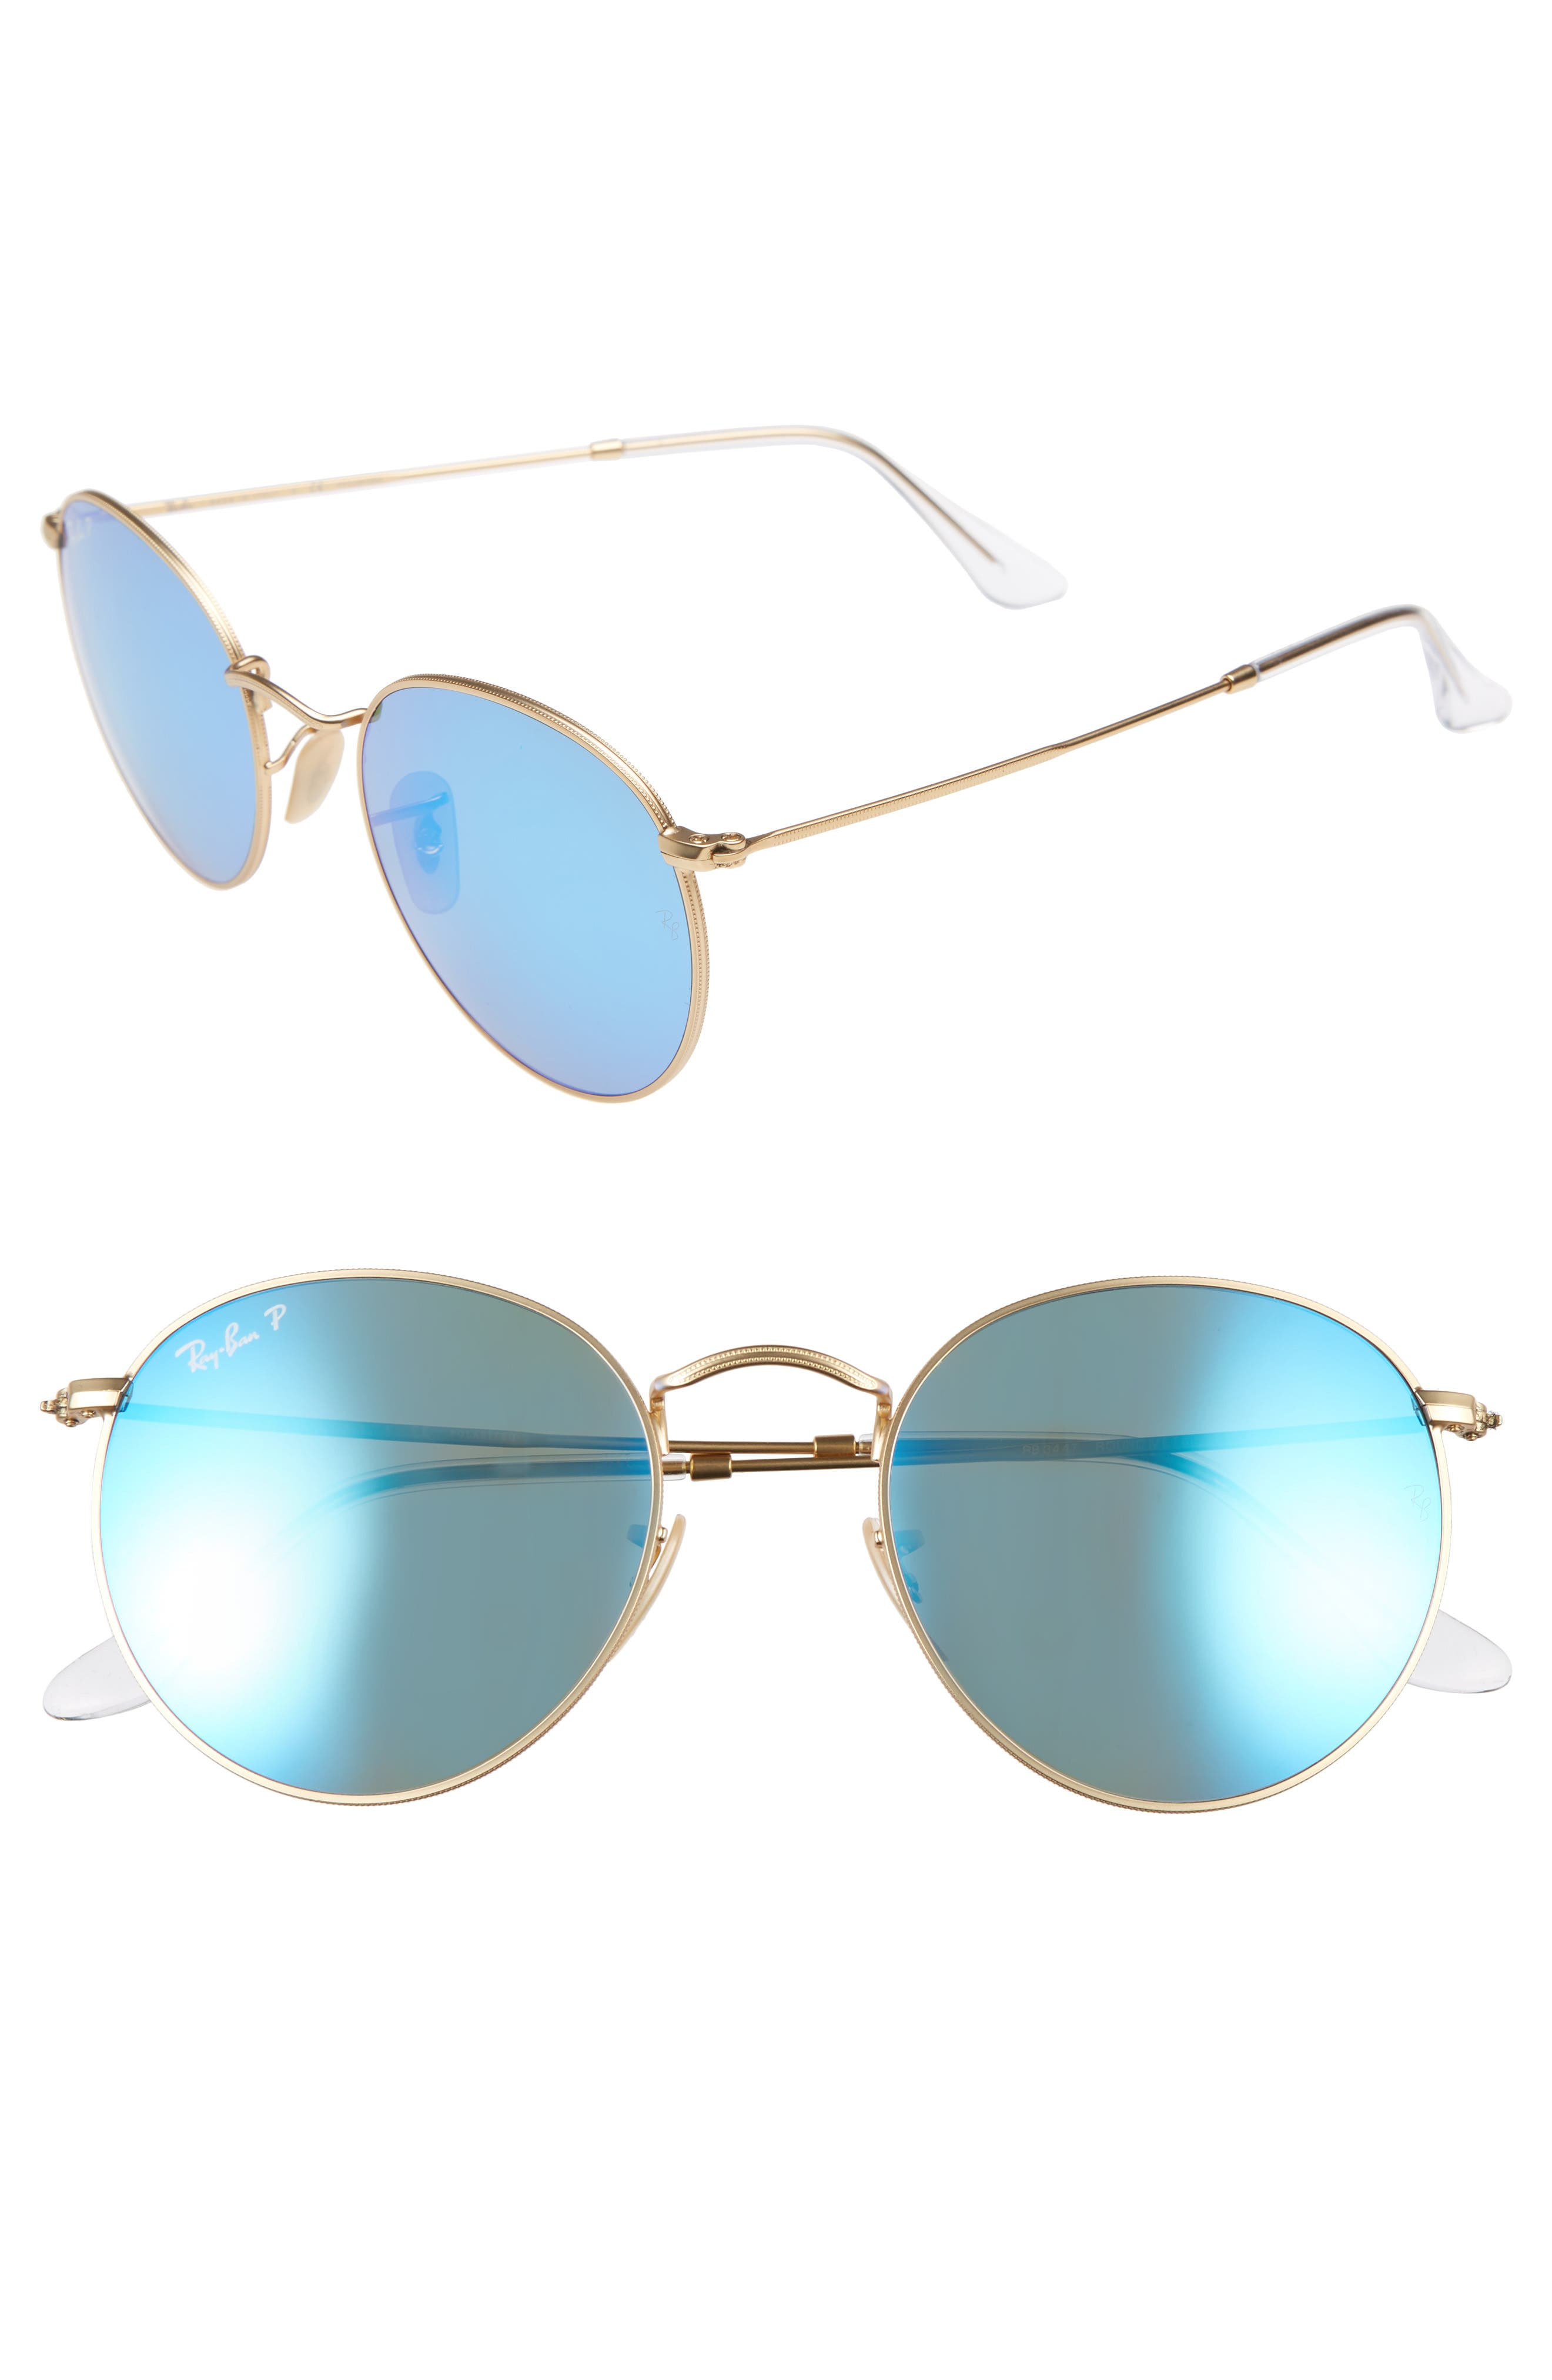 Ray-Ban 53mm Polarized Round Retro Sunglasses